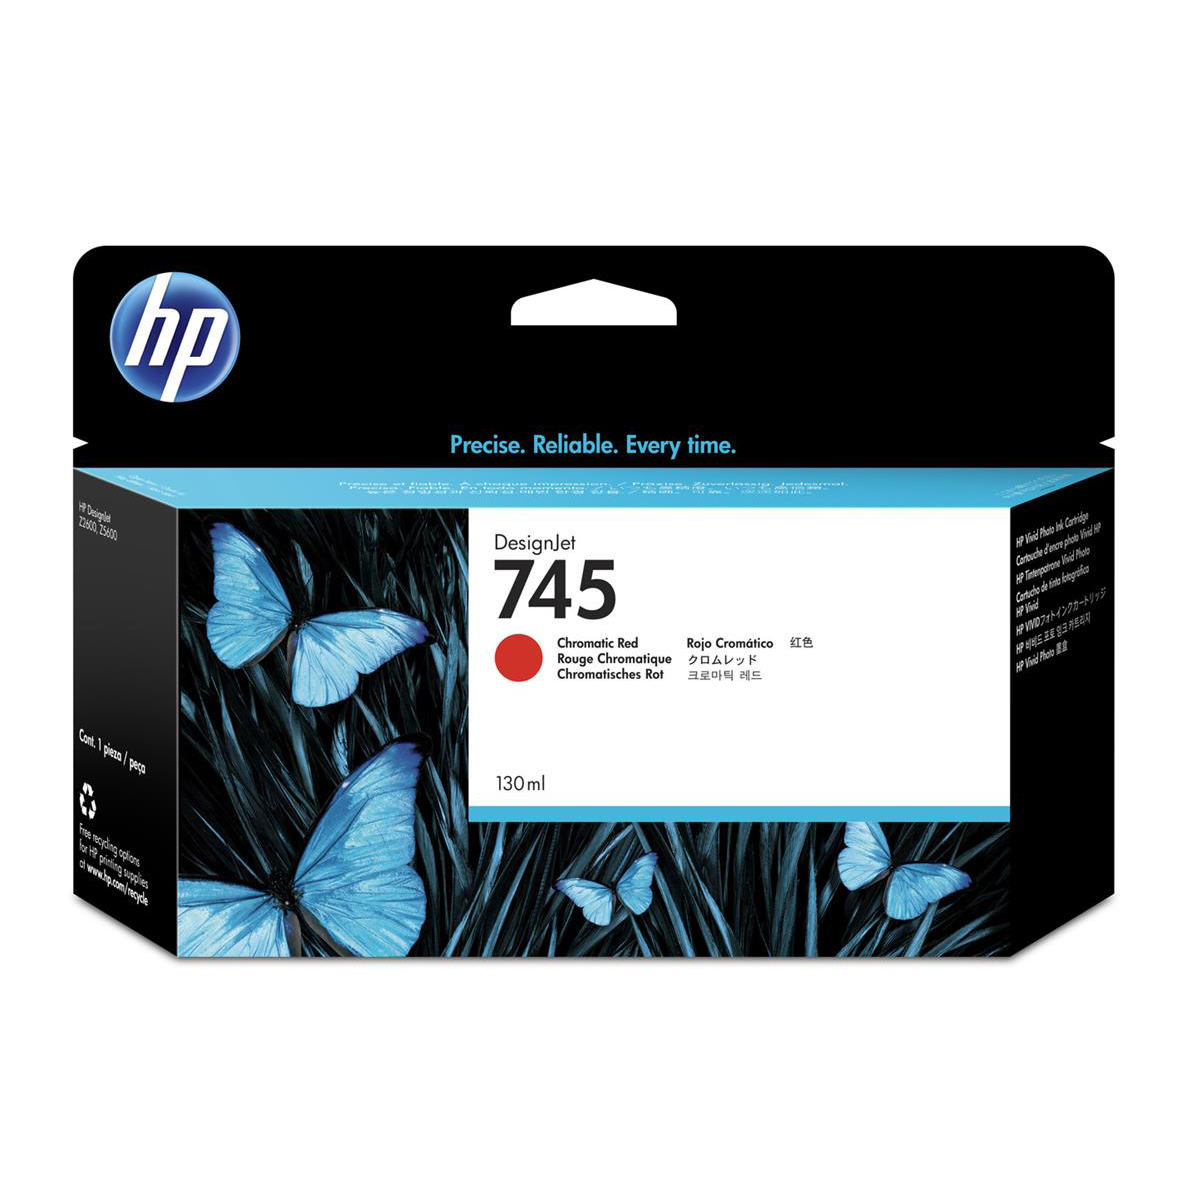 HP 745 130ml DesignJet Chromatic Red Ink Cartridge F9K00A *3 to 5 Day Leadtime*